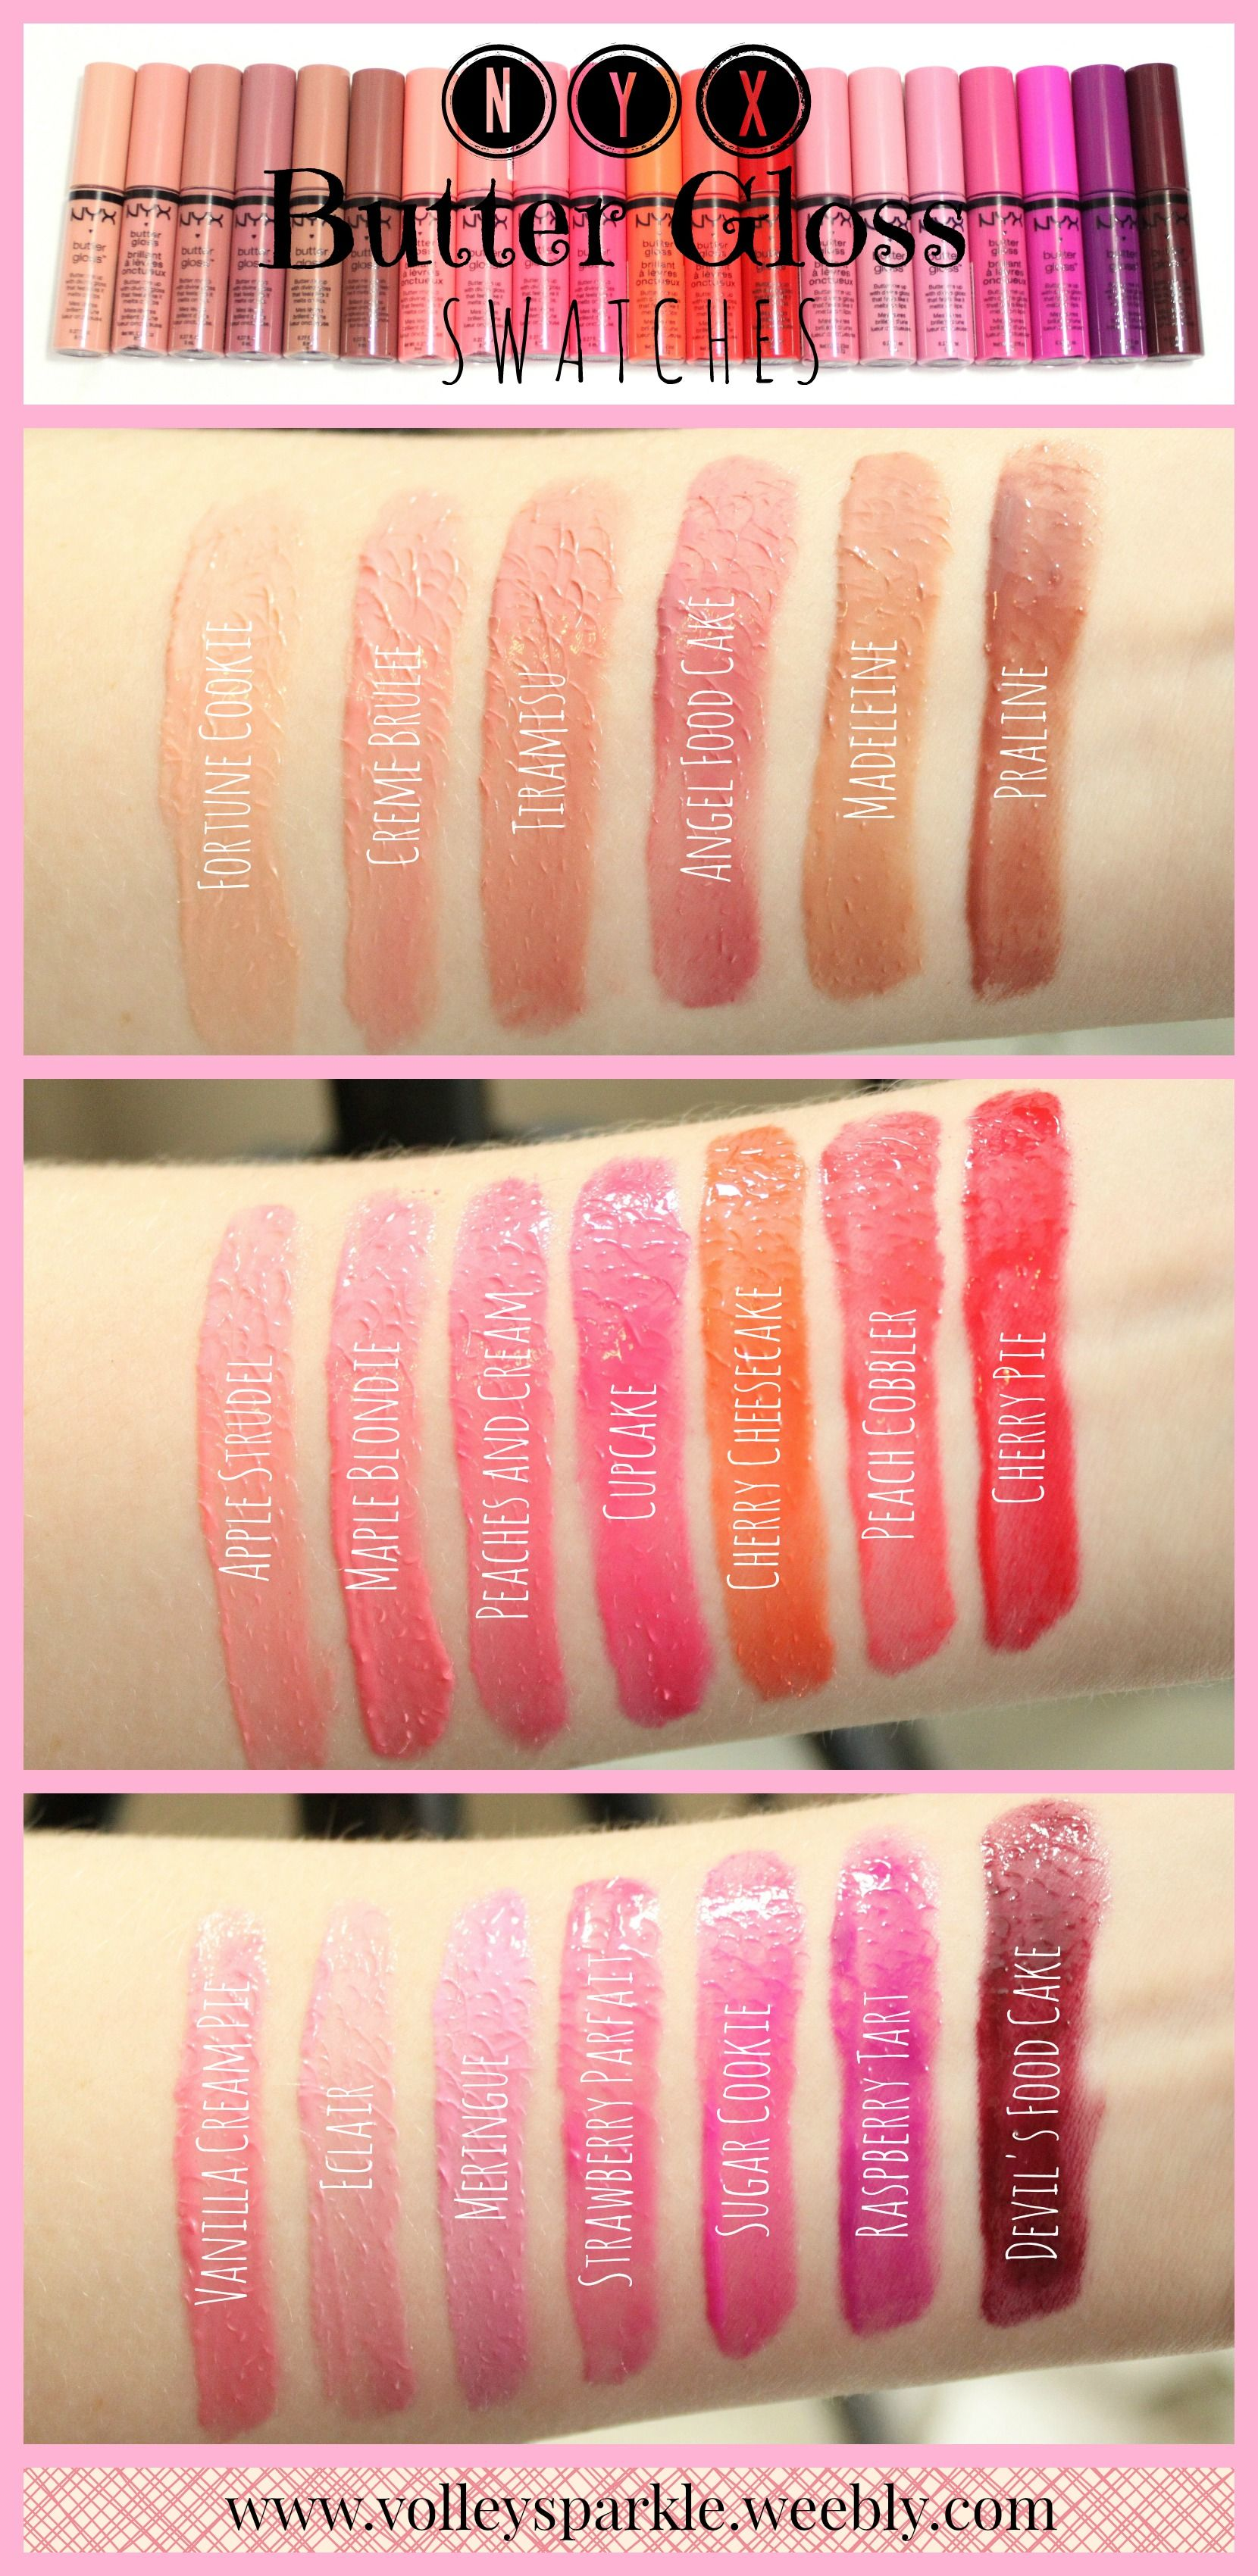 Nyx Butter Gloss Swatches 20 Shades Nyx butter gloss